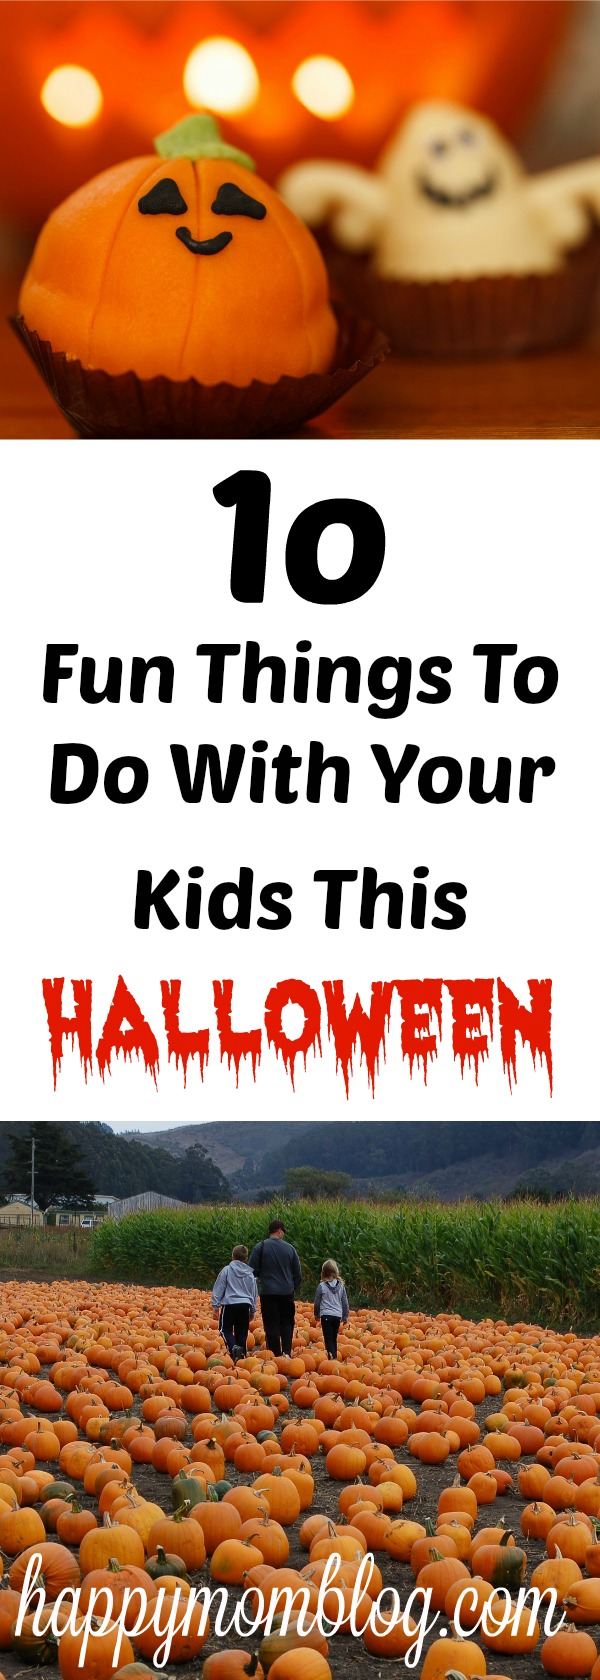 Fun things to do with your kids this halloween